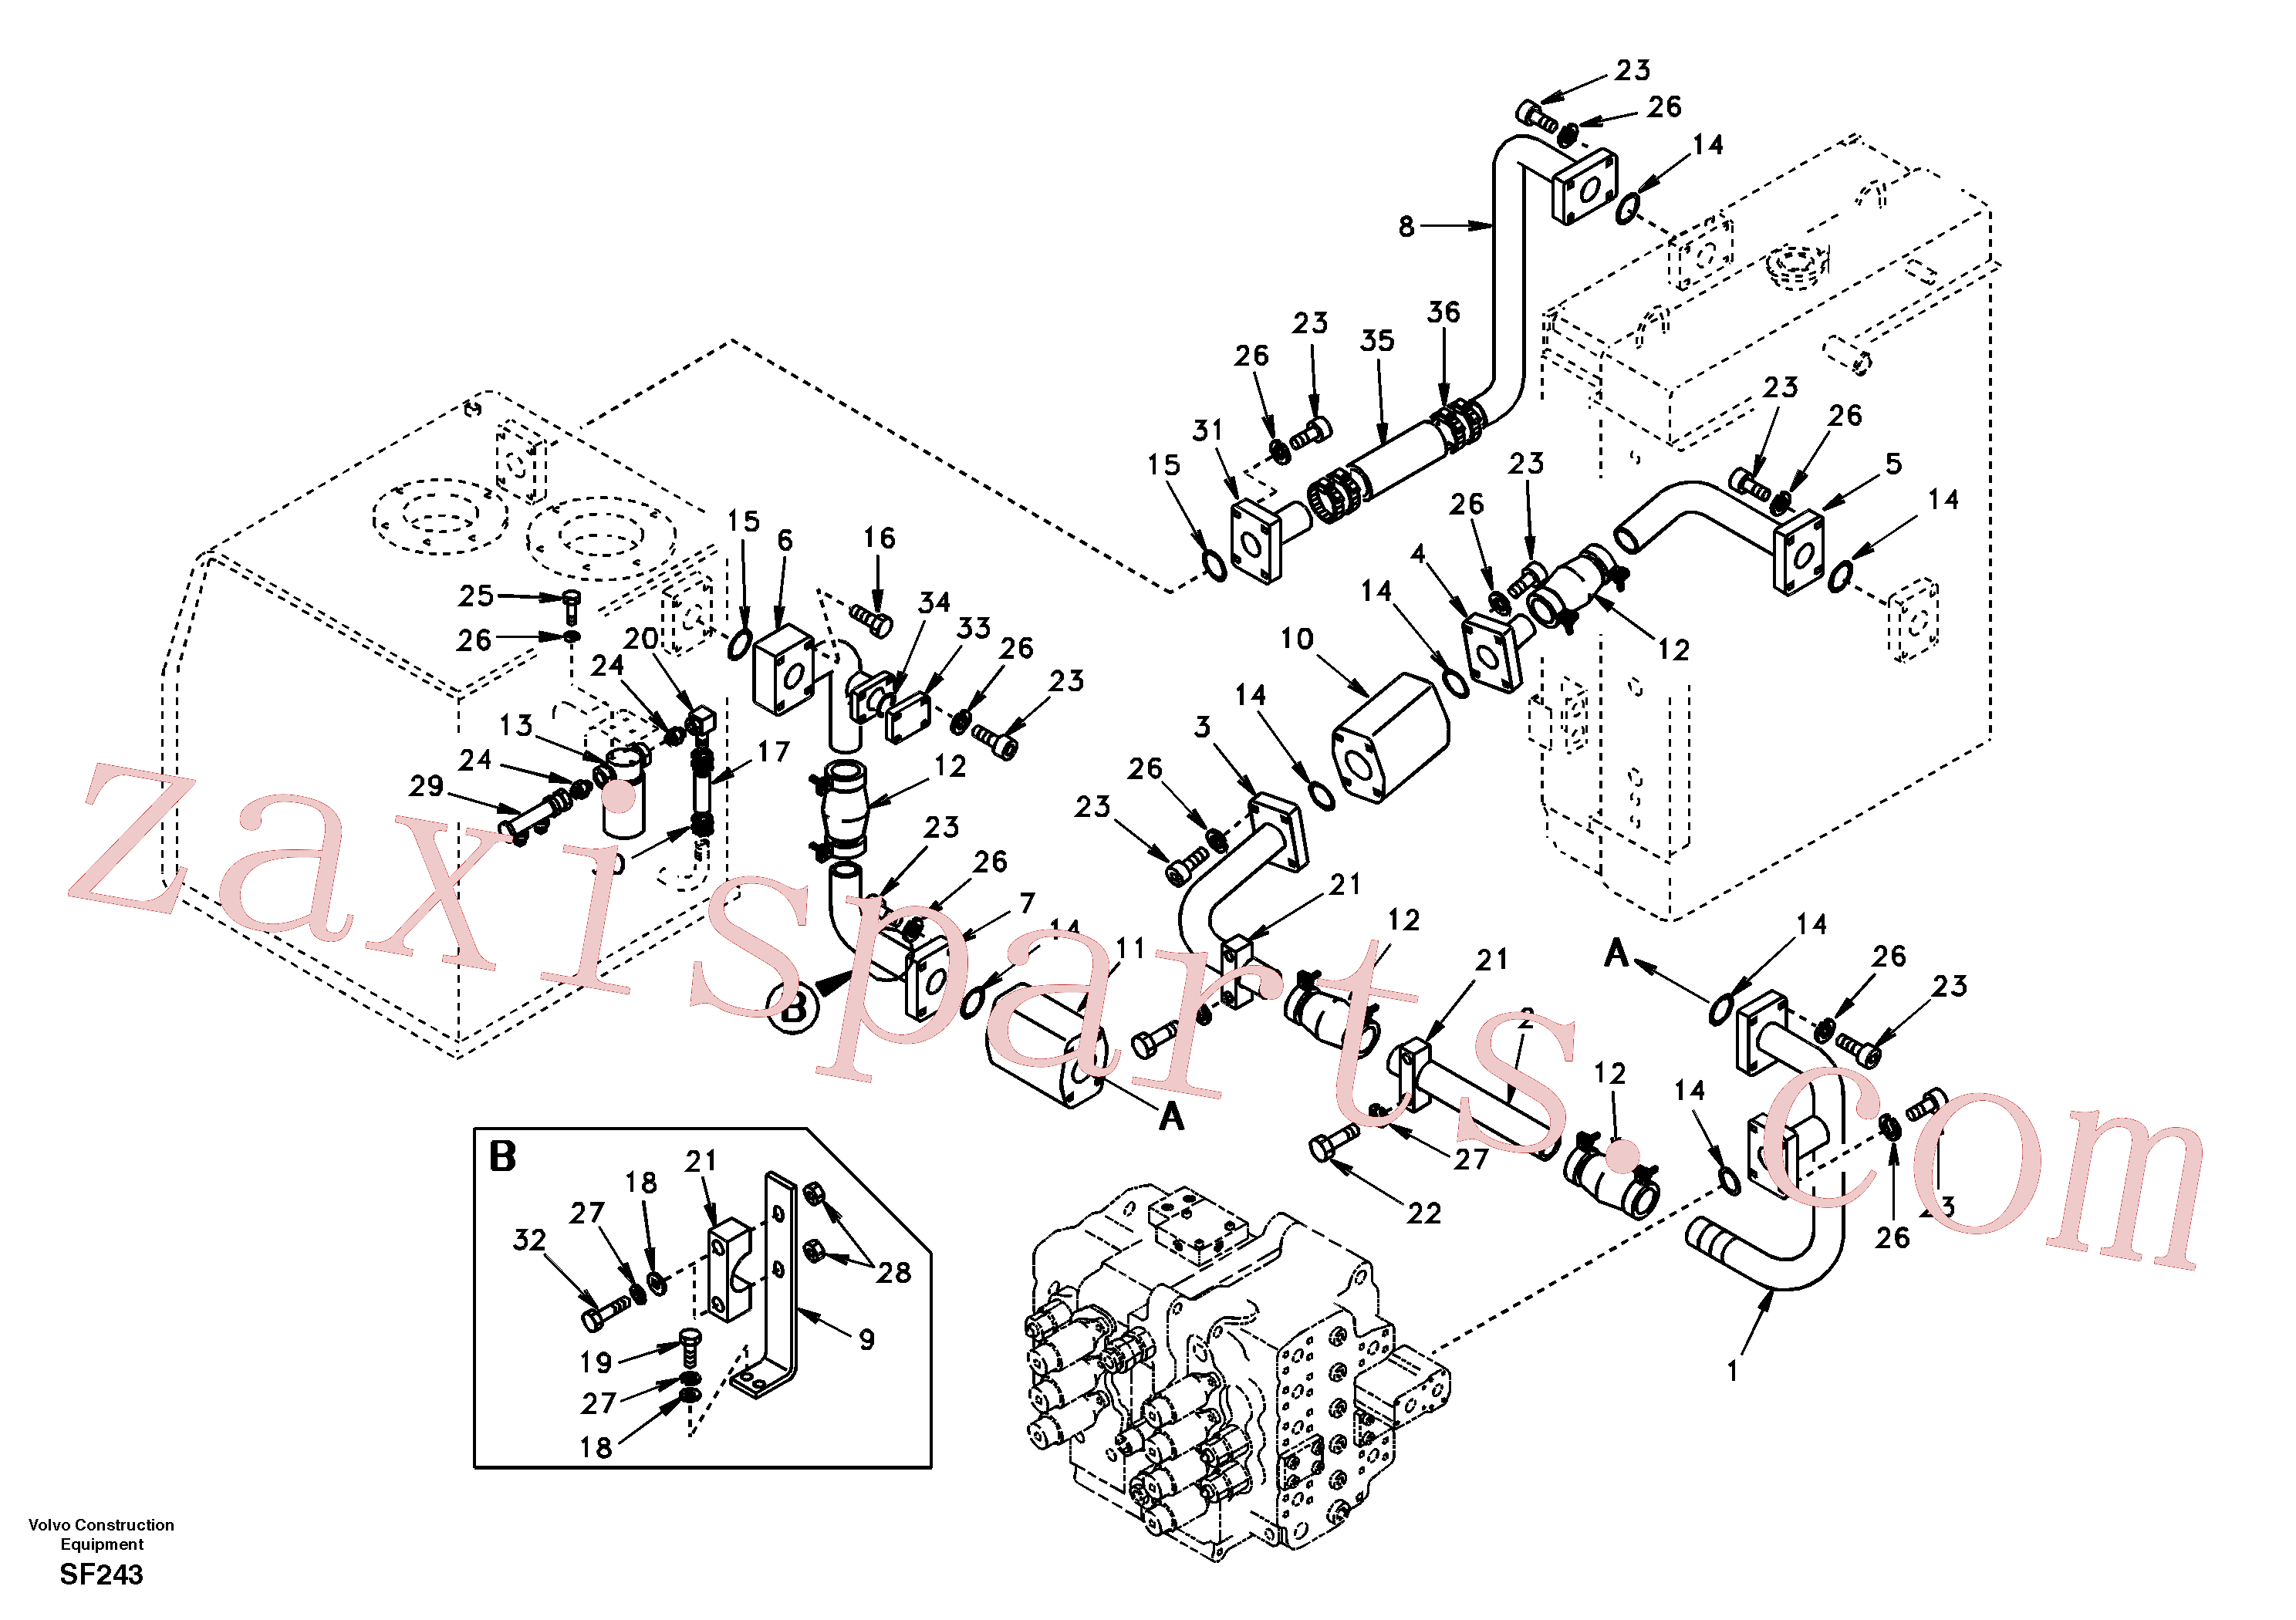 SA9444-06208 for Volvo Hydraulic system, hydraulic tank to hydraulic oil cooler(SF243 assembly)